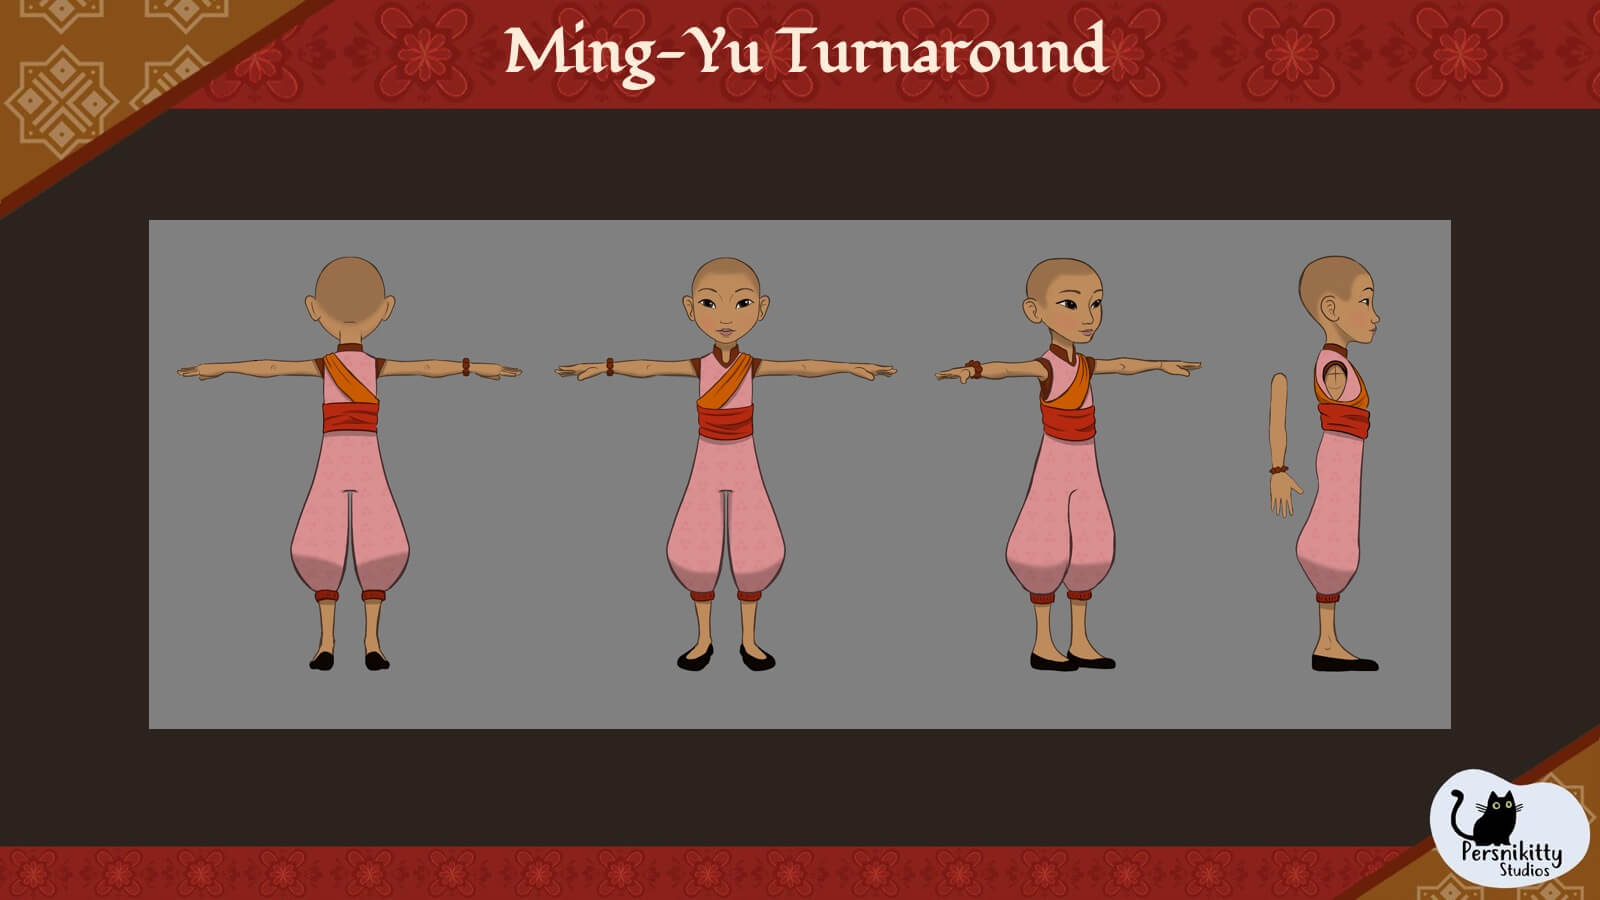 A slide with a turnaround of the character model for Ming.